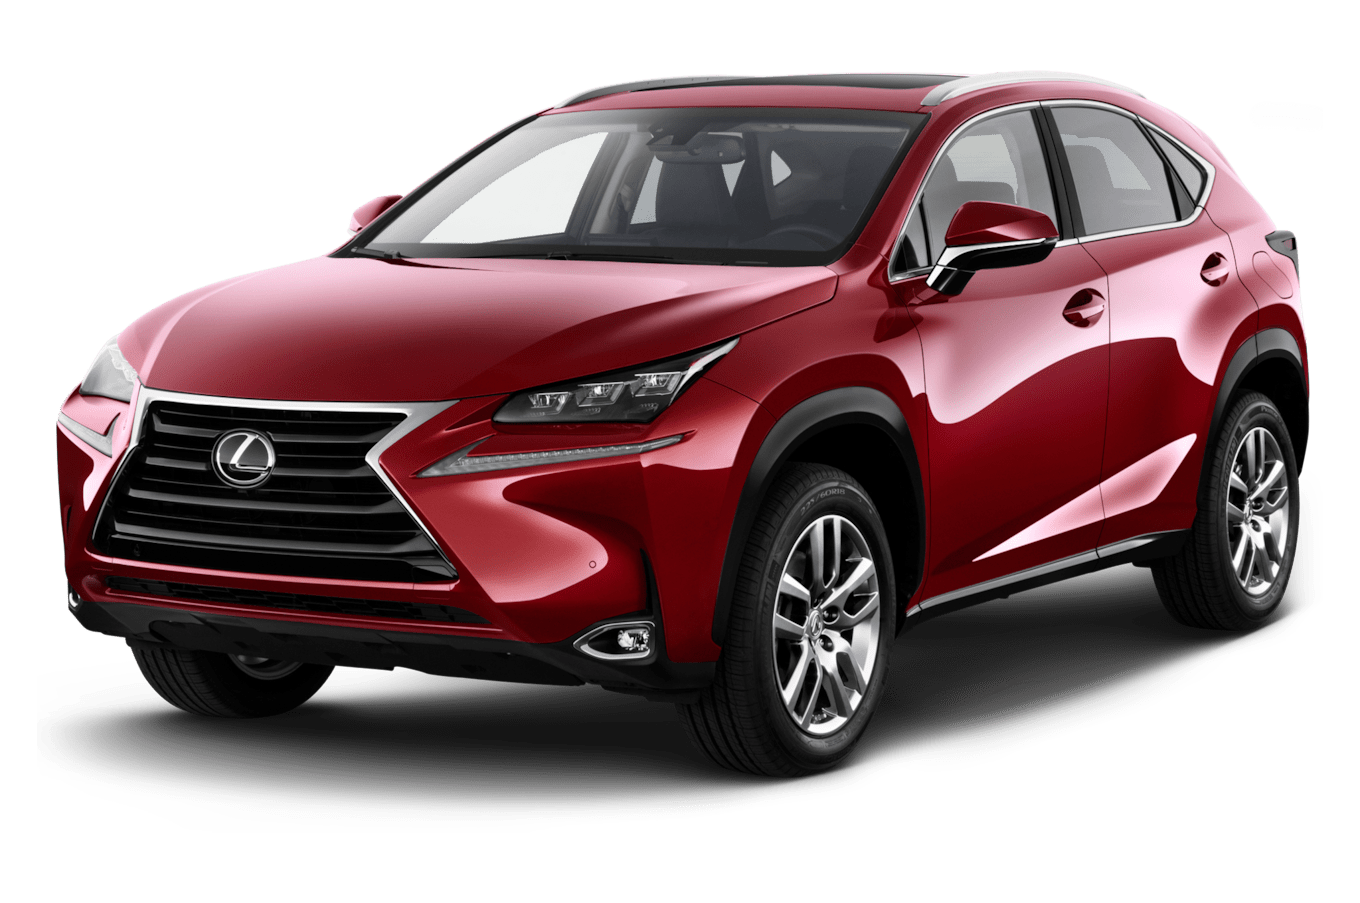 2016 Lexus NX200t Reviews and Rating